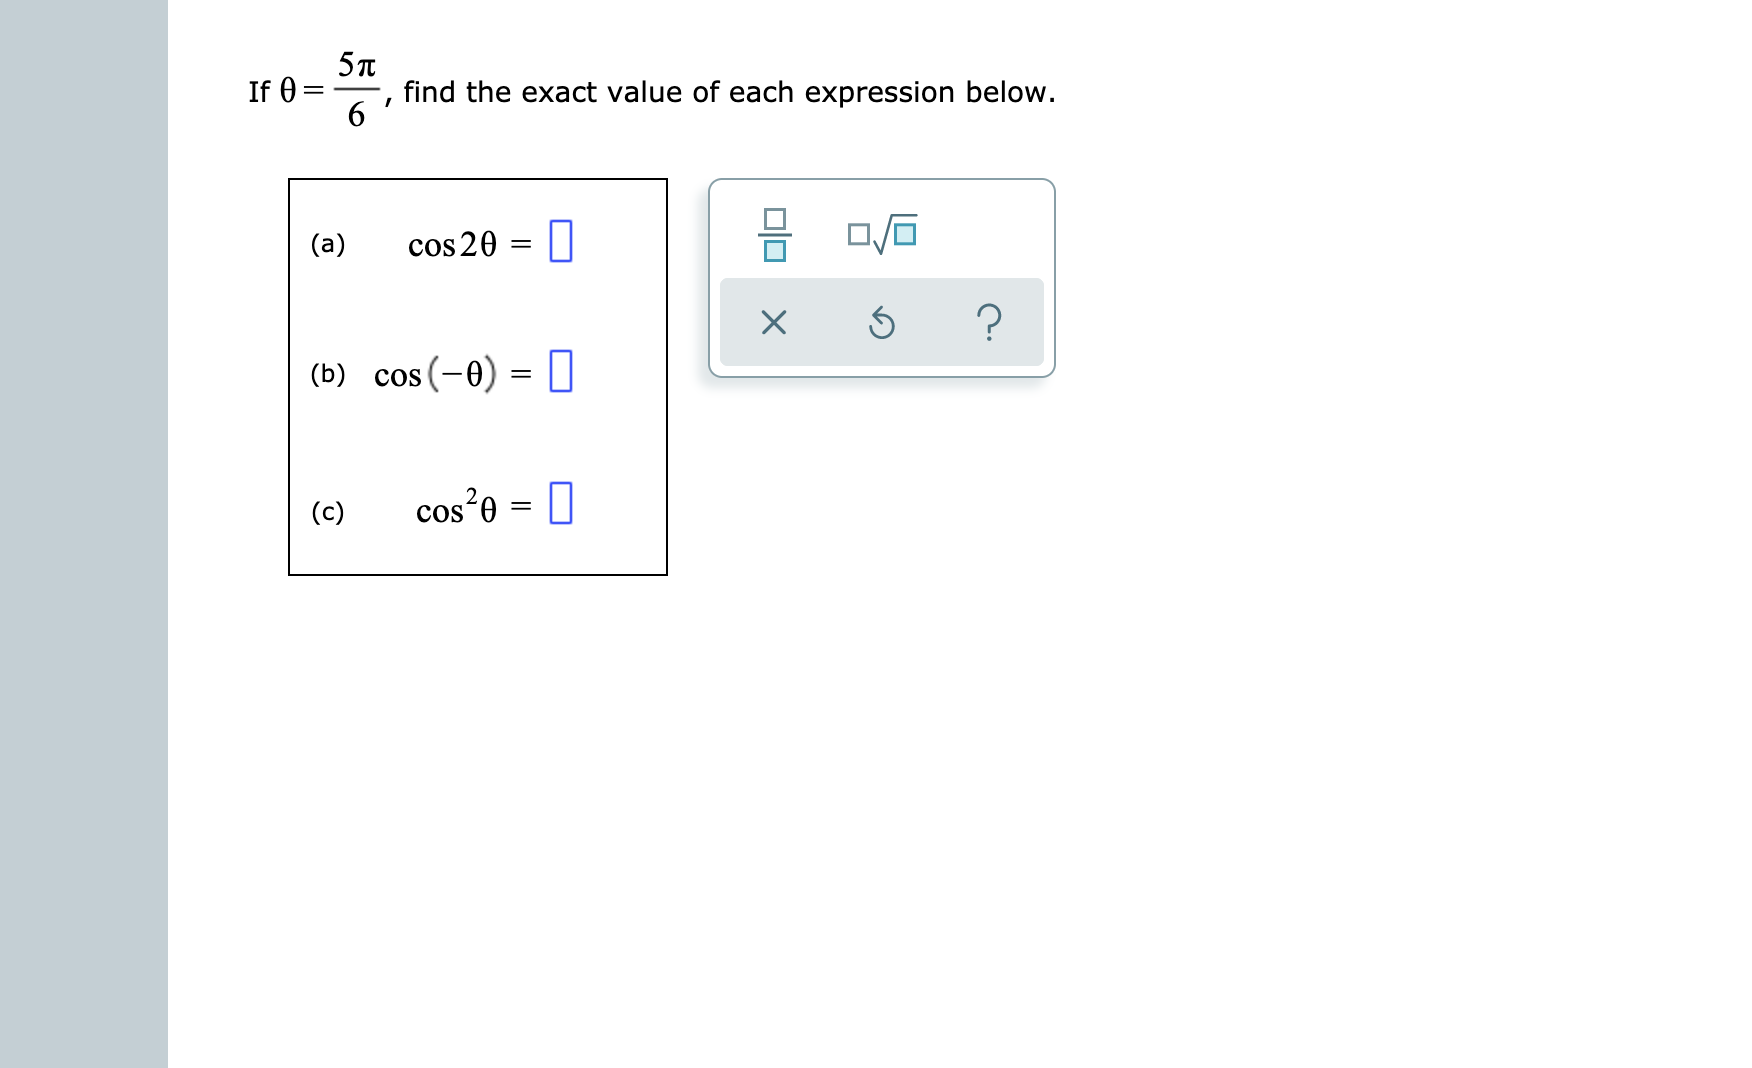 5л find the exact value of each expression below. If 0 6 cos 20 (a) ? (b) cos (-0) I cos e (c) = COS O X